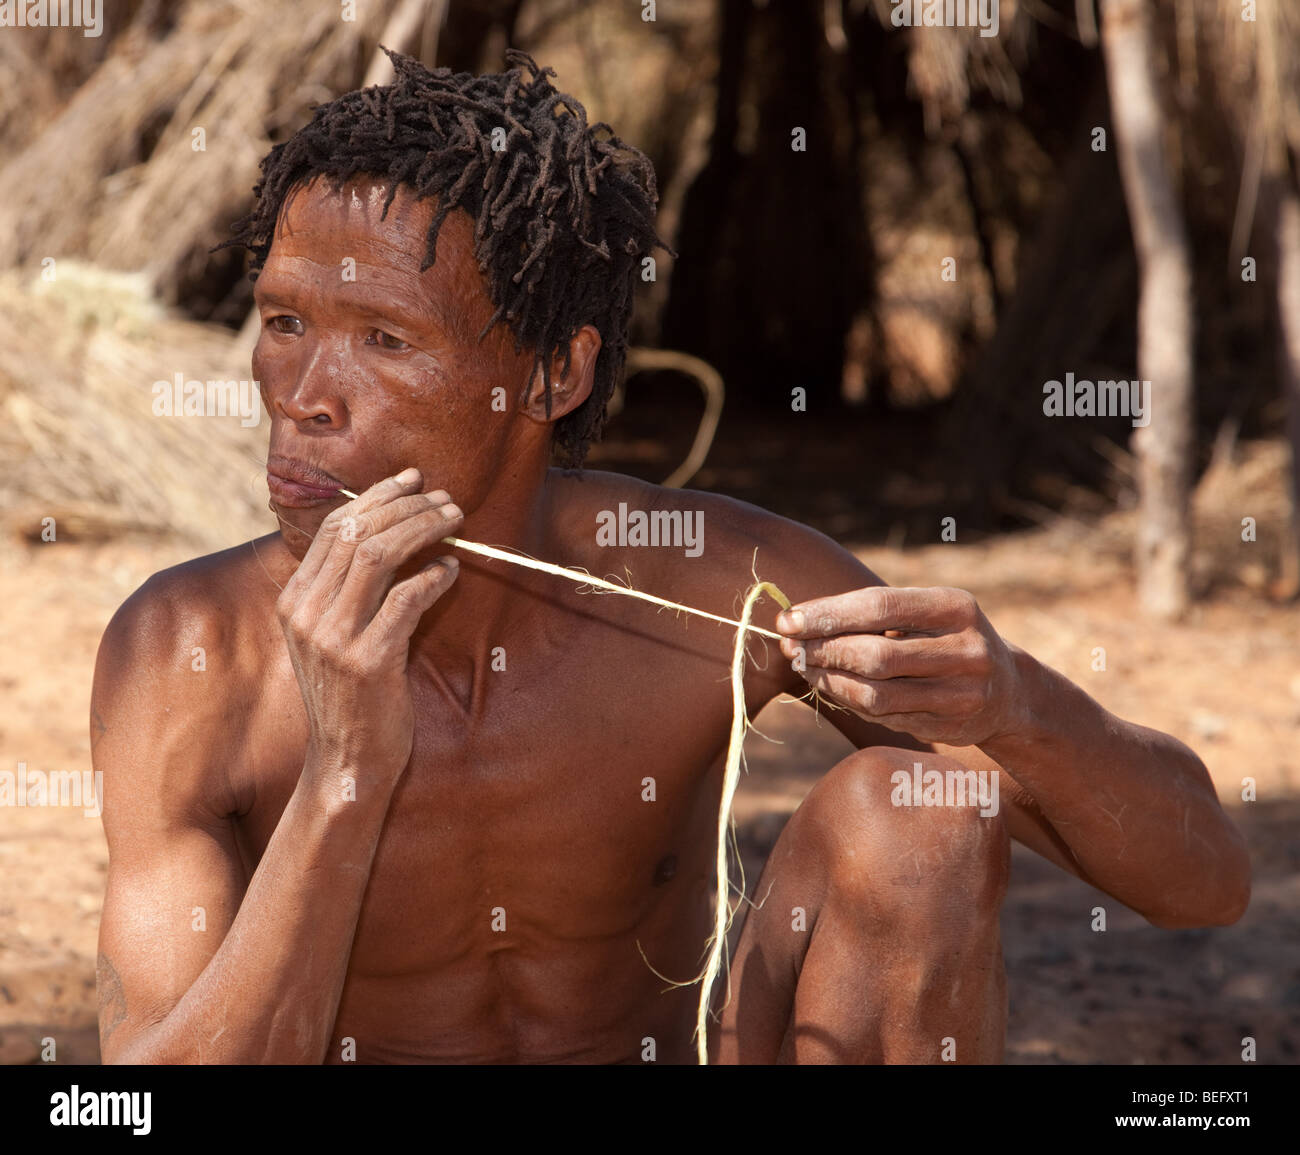 San Village. Manufacturing a bow and arrow the traditional way. Preparing the bow string. - Stock Image